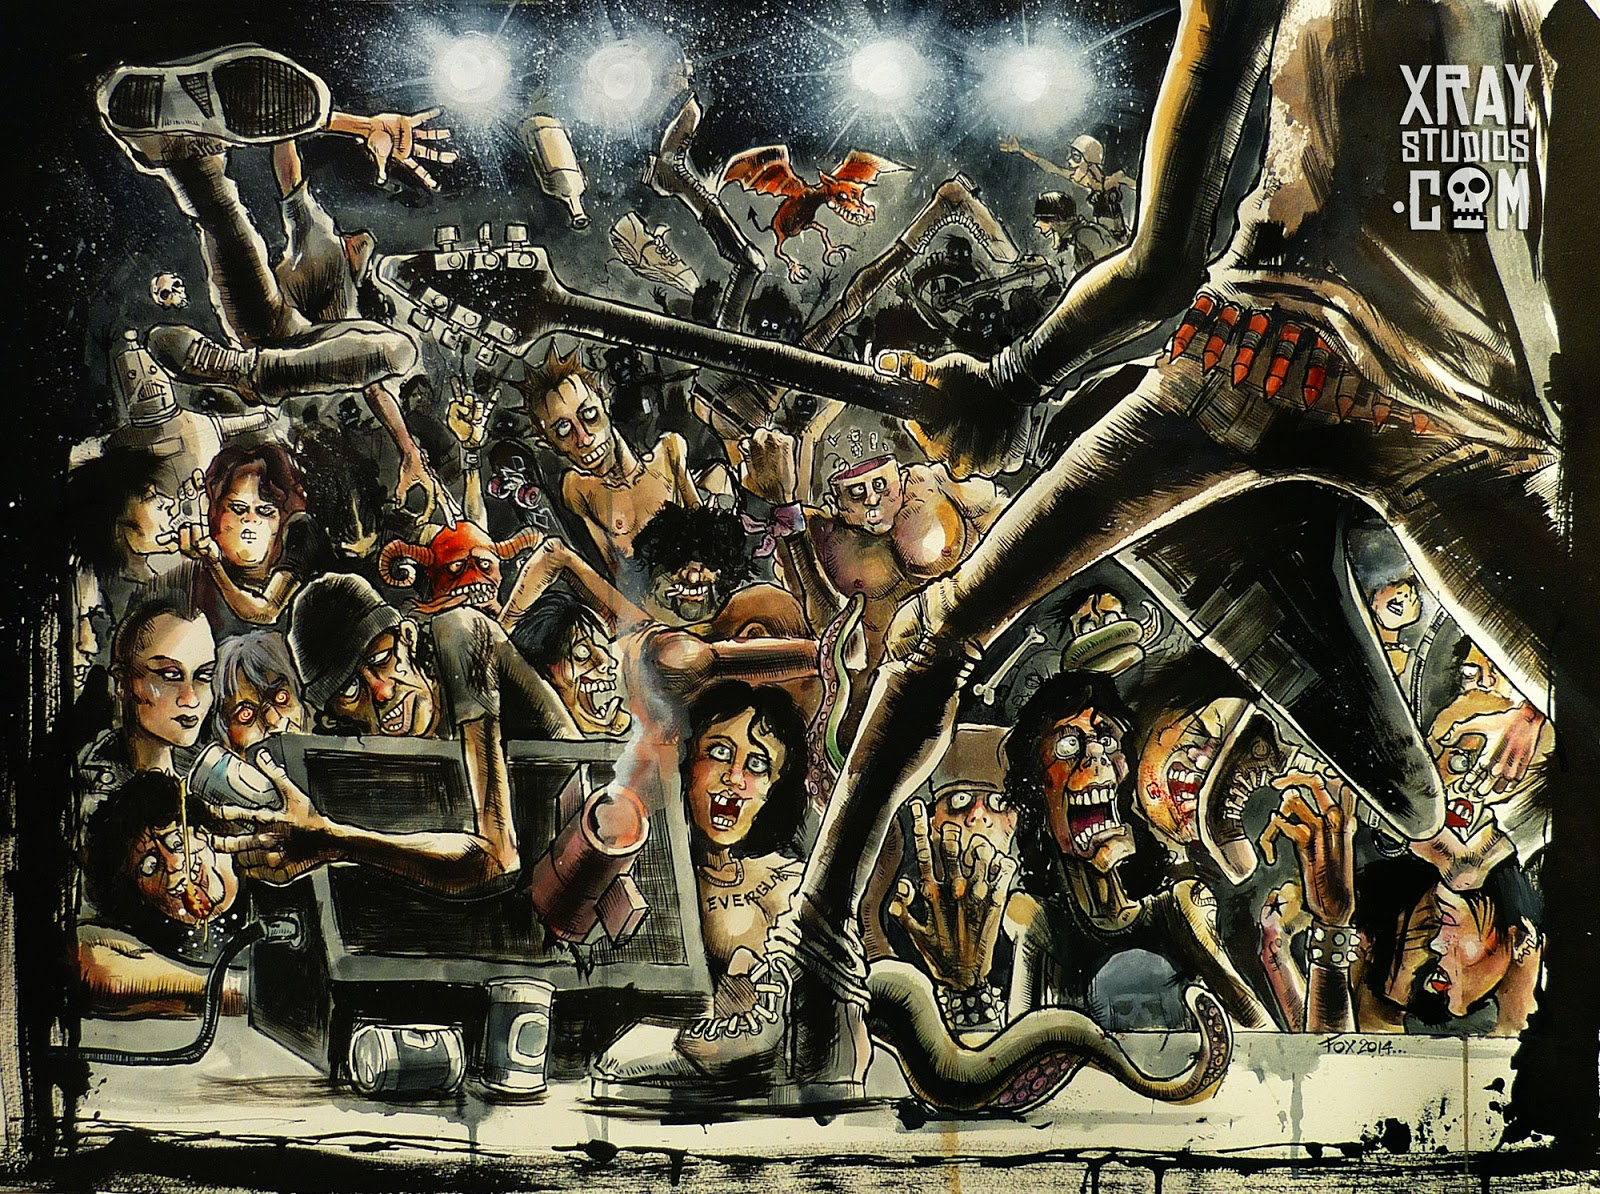 """Caught In A Mosh"" watercolour and ink illustration by Mike Foxall www.xraystudios.com"